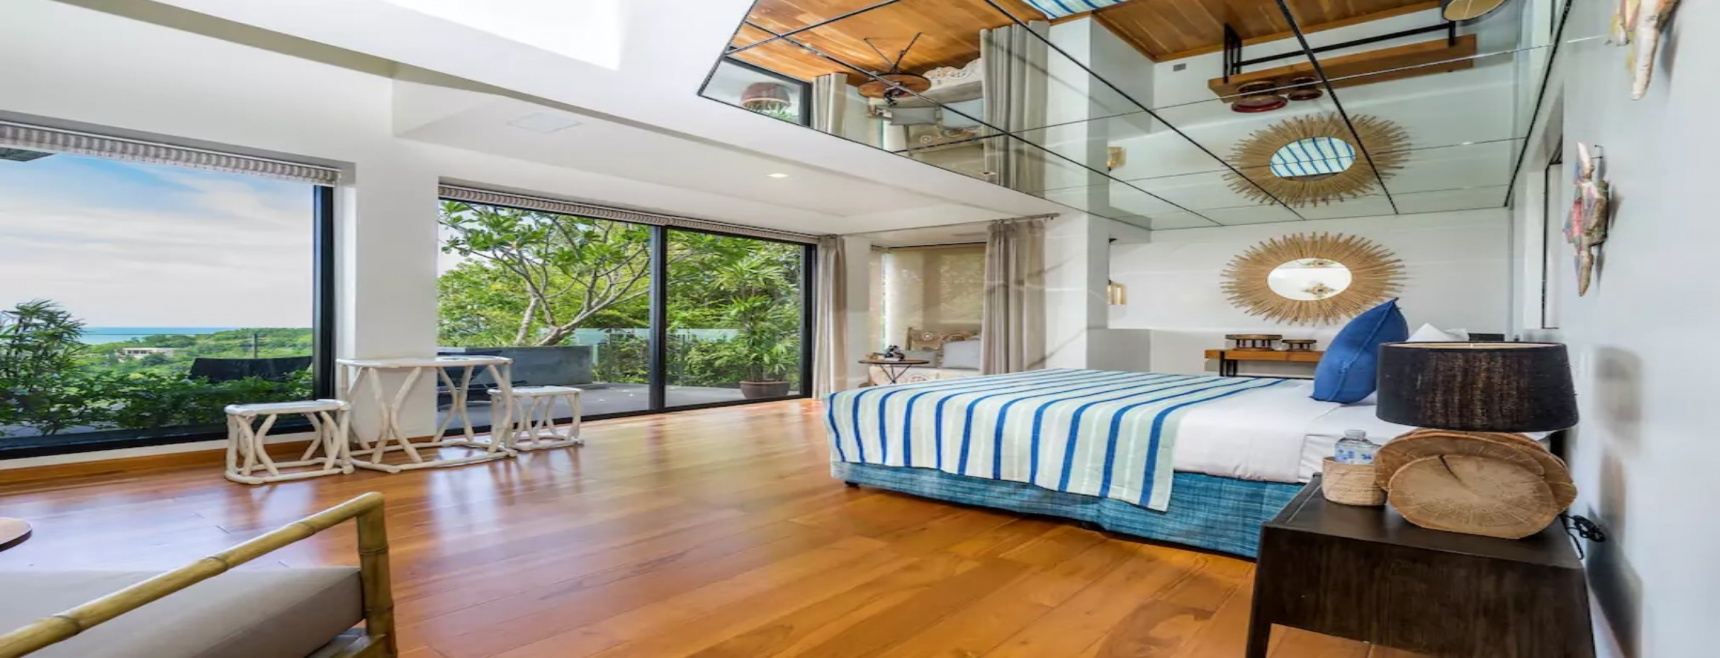 8 Bedrooms, Villa, Residential Sales, 8 Bathrooms, Listing ID 1488, Choeng Mon, North East, Koh Samui,